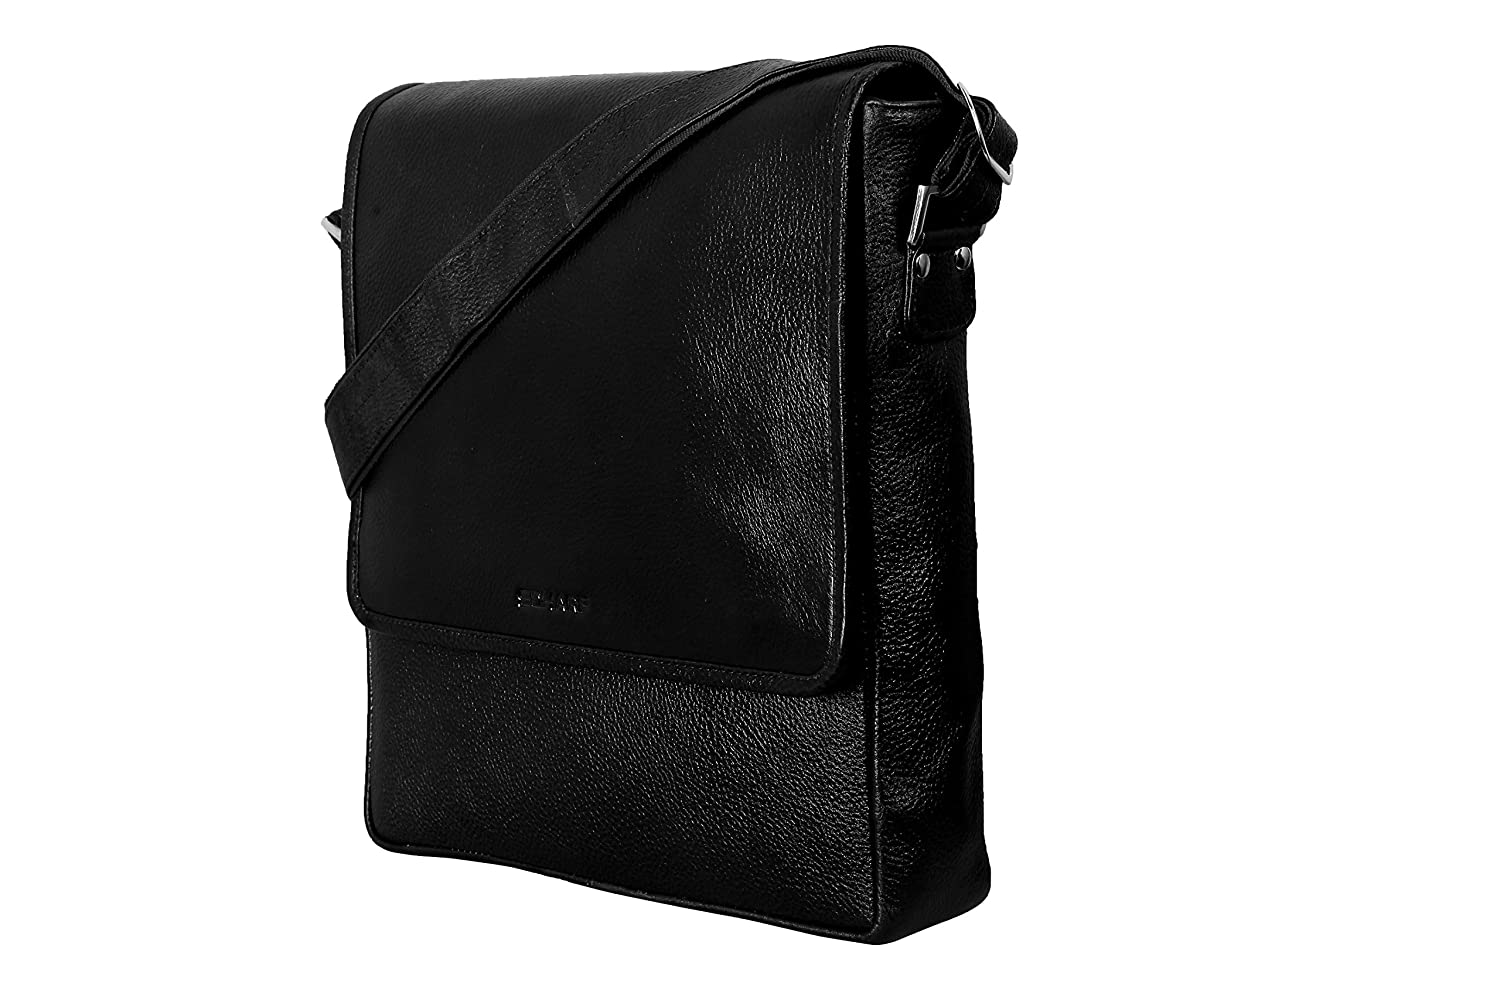 SCHARF Robin Arthur-Come Soon Men s Leather Black Sling Bag  Amazon.in  Bags 8a0e863568117